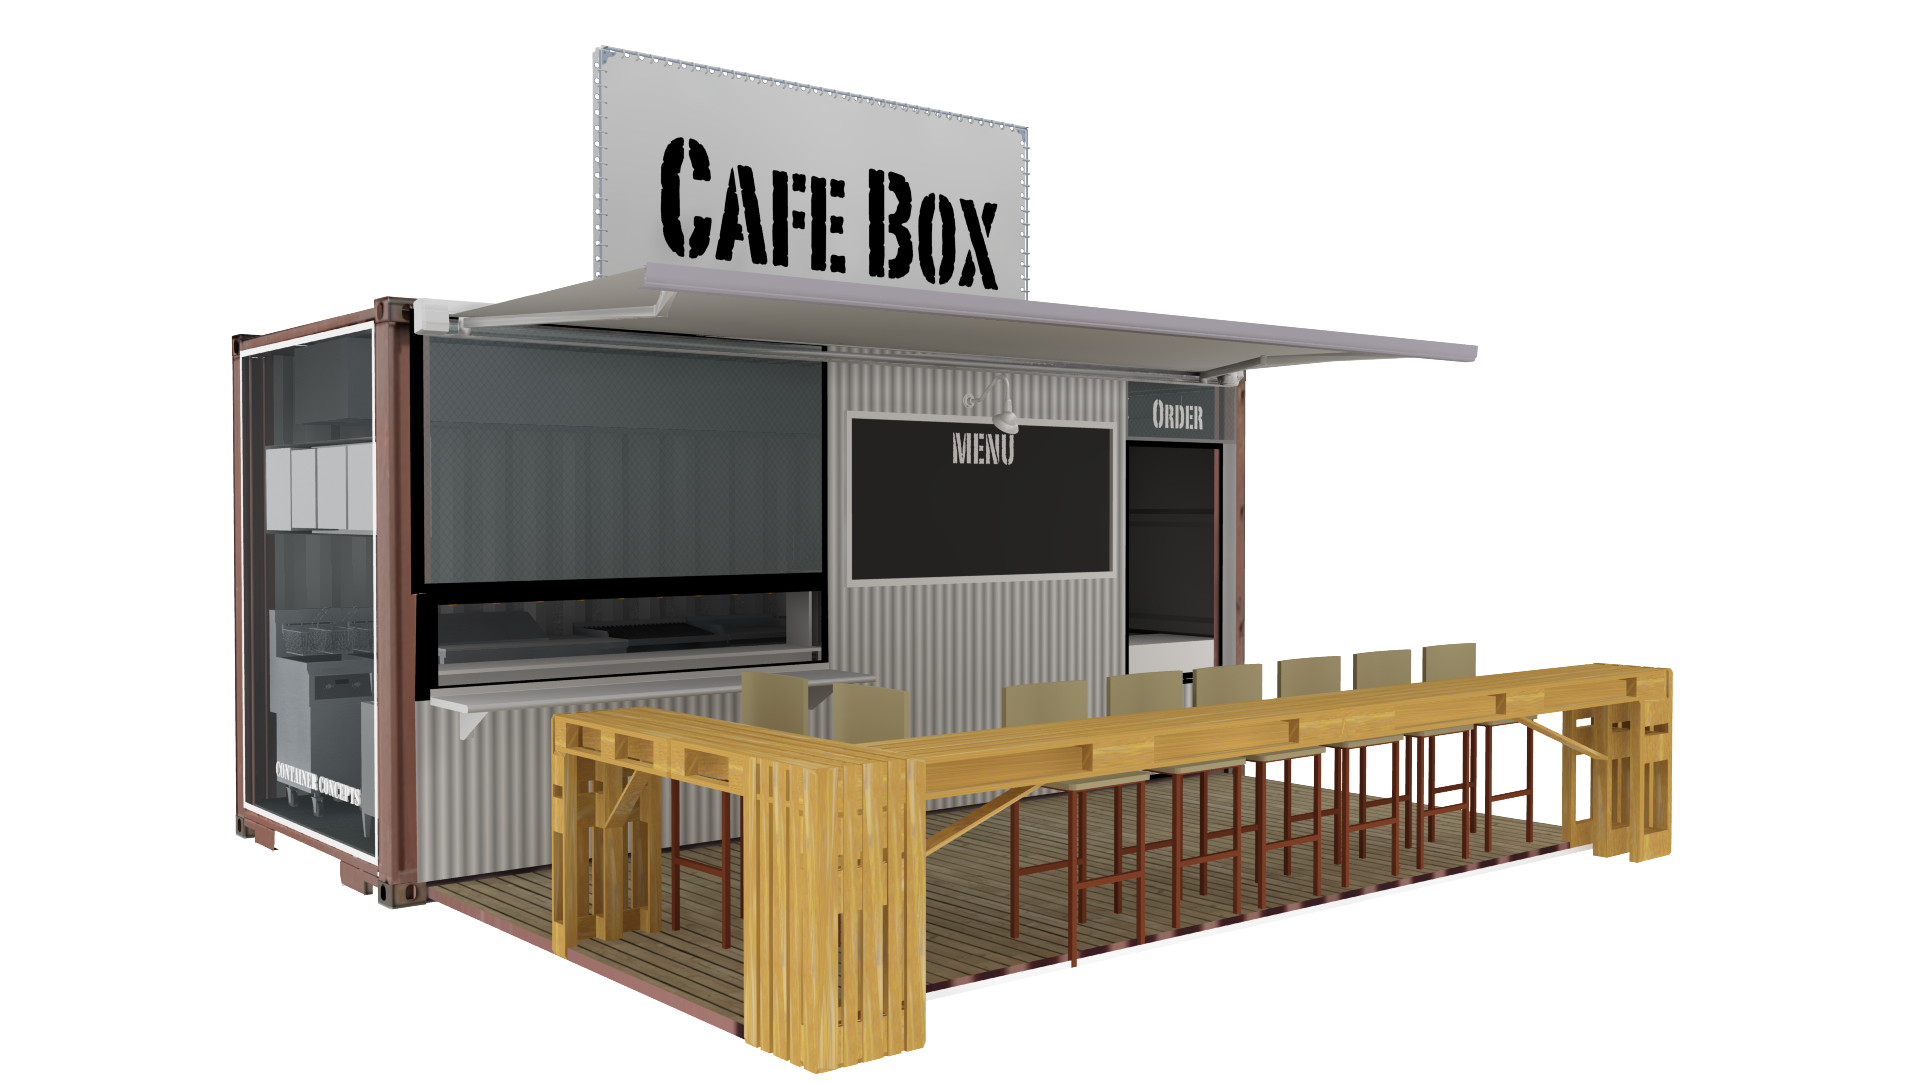 Shipping Container Floor Plan Designs Container Concepts Quot Concepts In A Box Quot Commercial